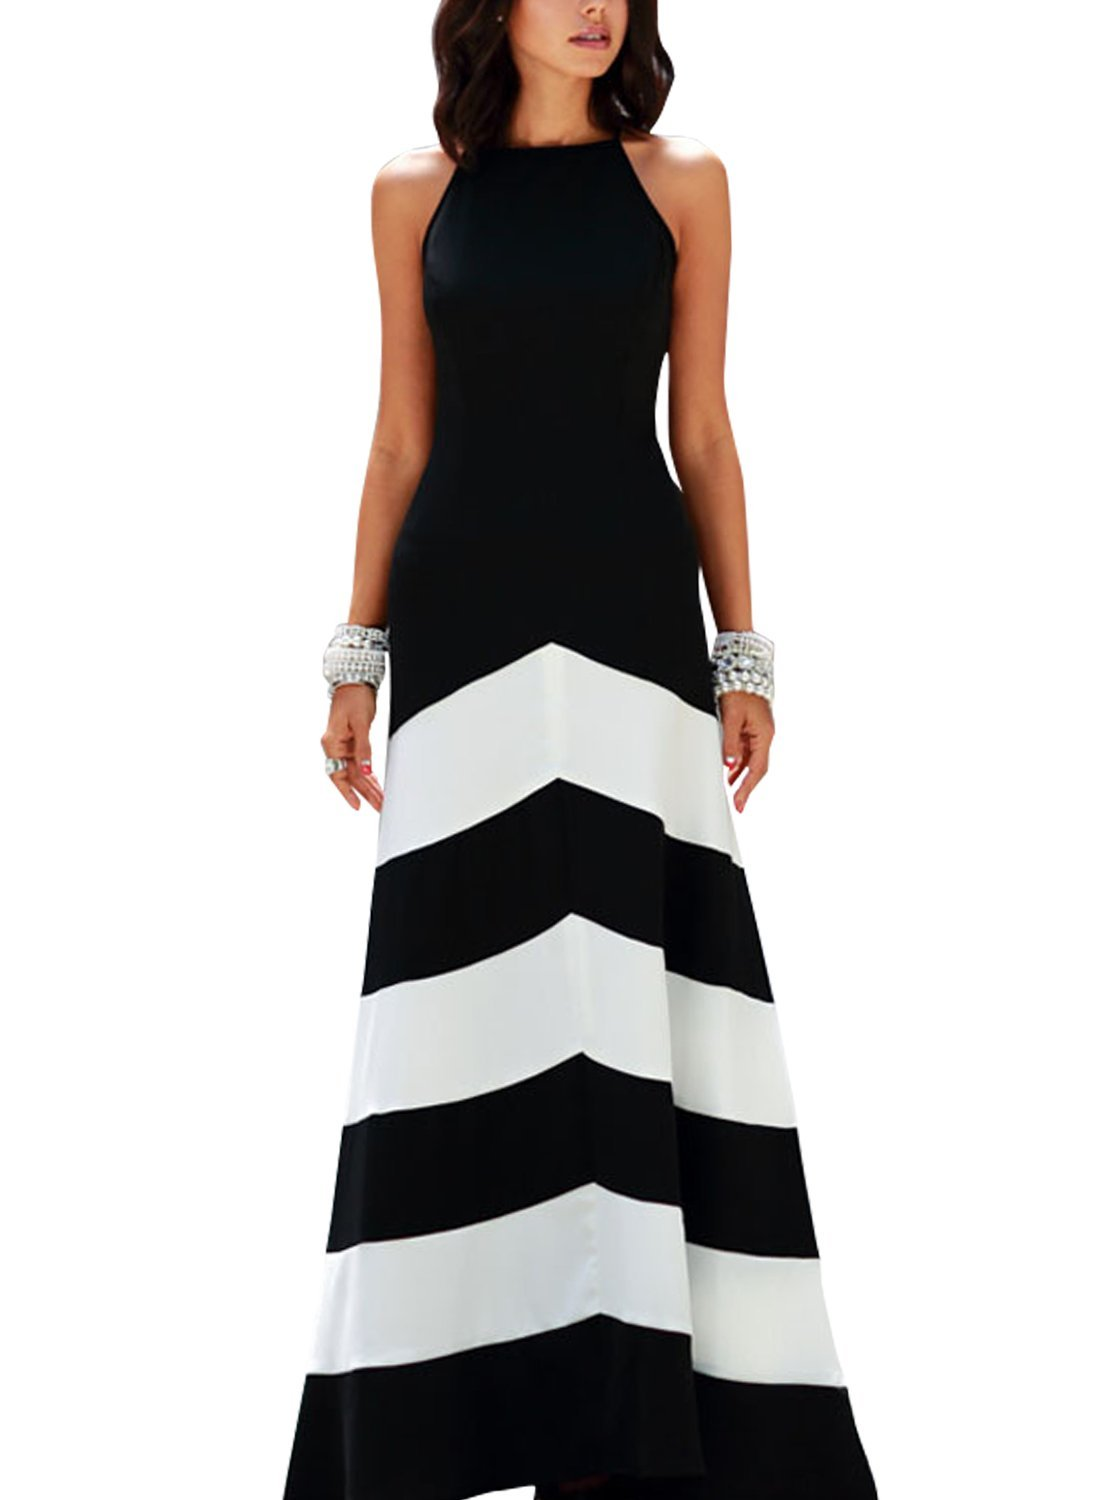 Anni coco women 39 s slim black white striped party maxi for How to get foundation out of a white shirt